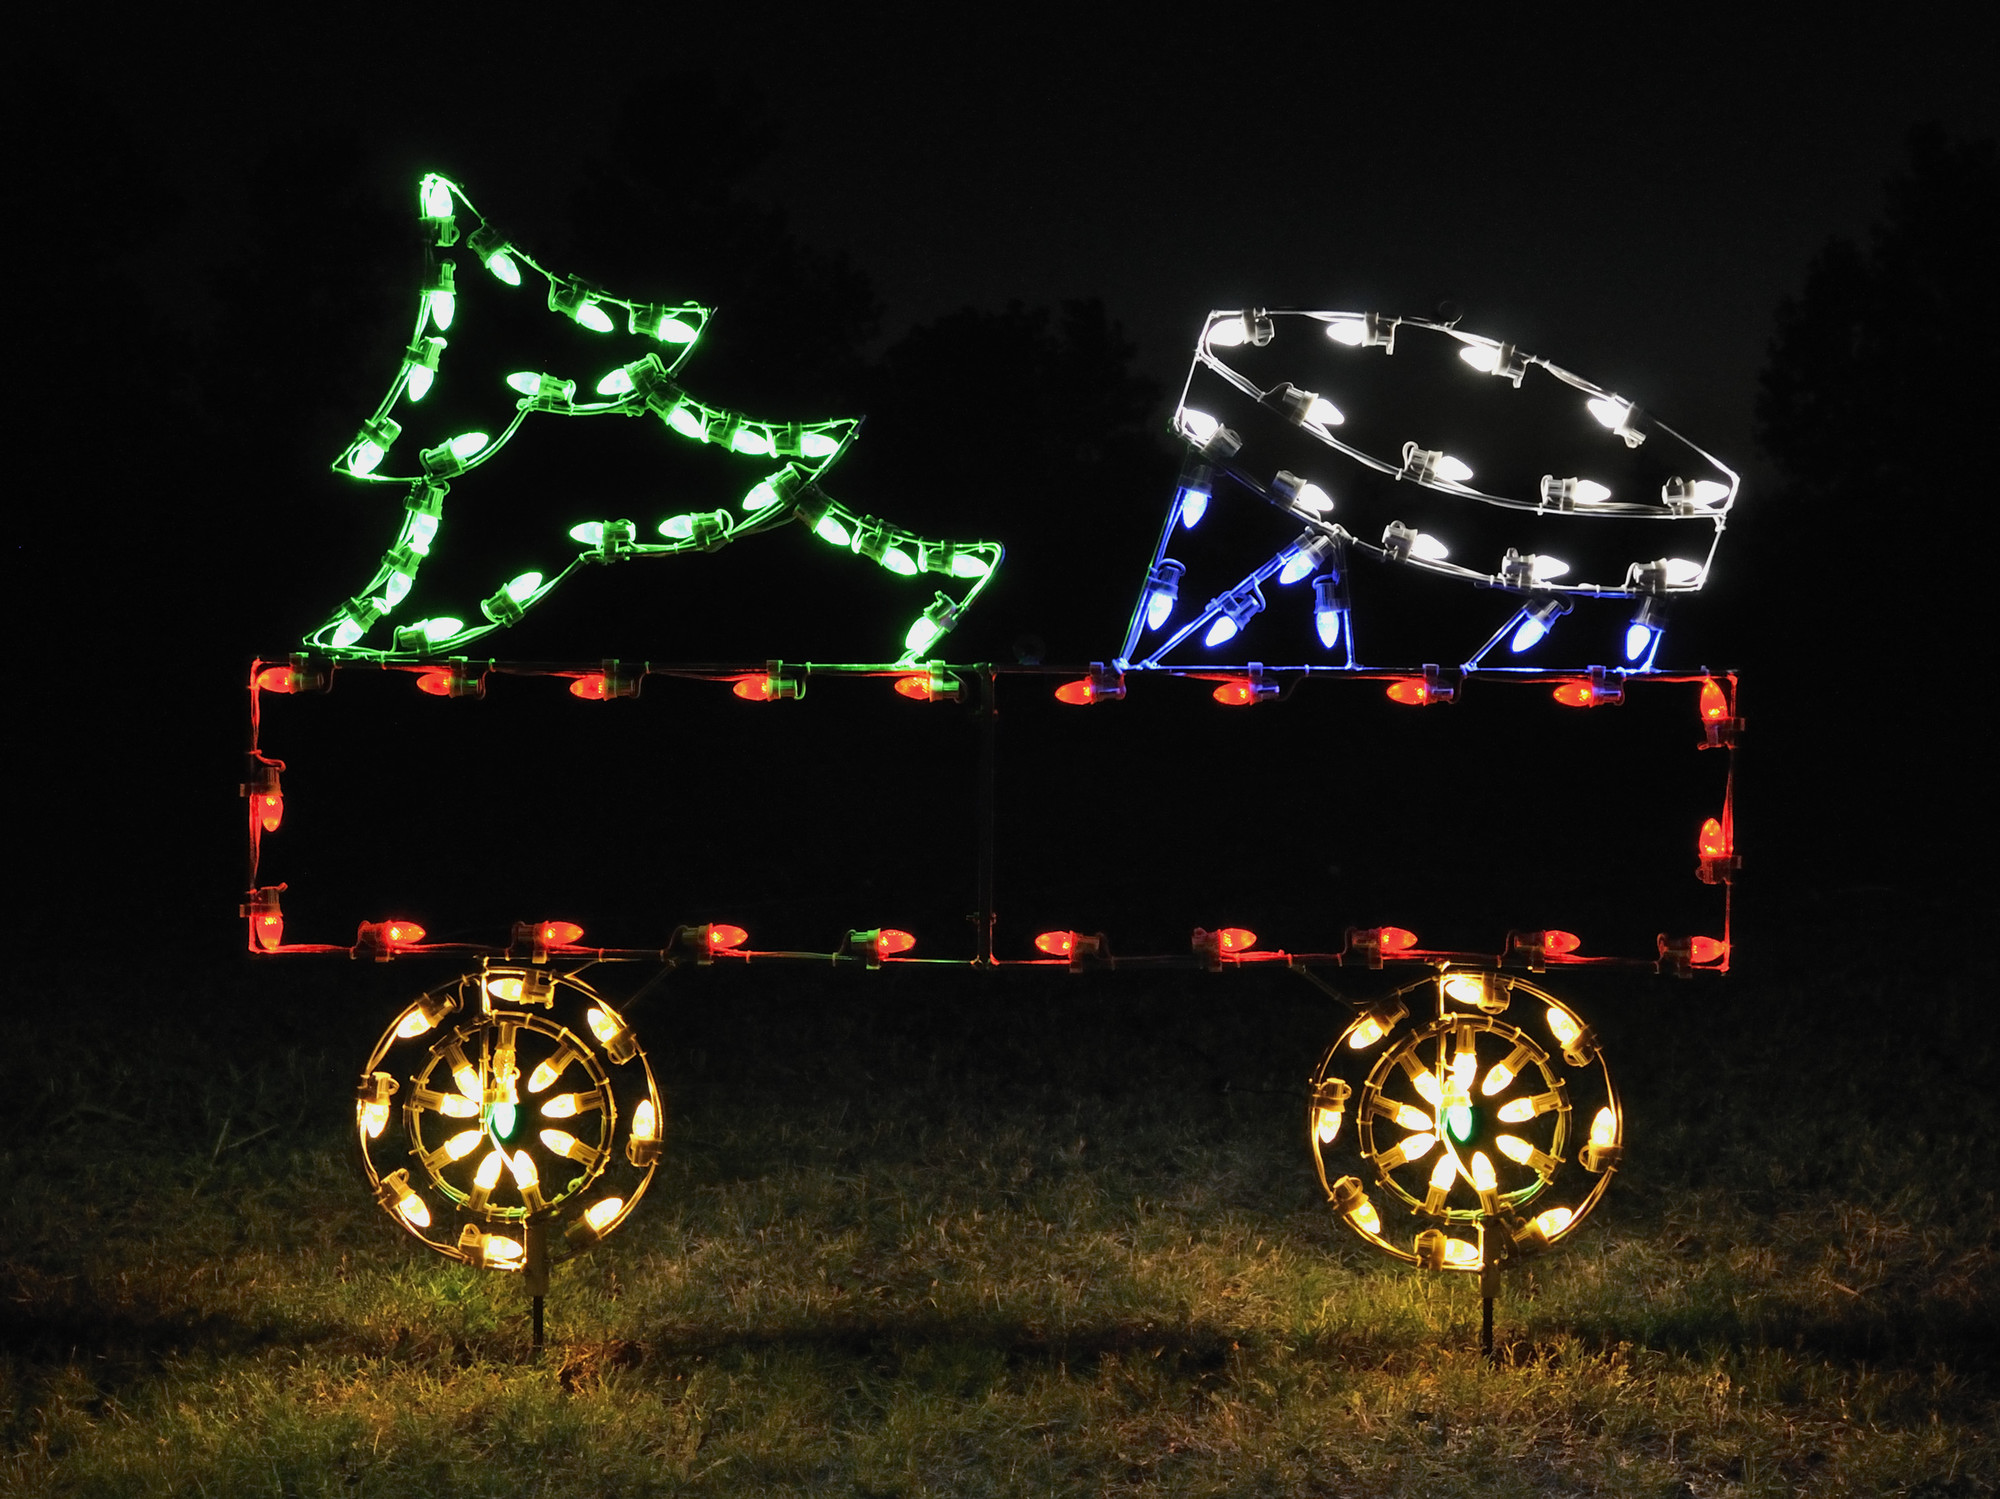 A Collection of Outdoor Christmas Light Displays 5